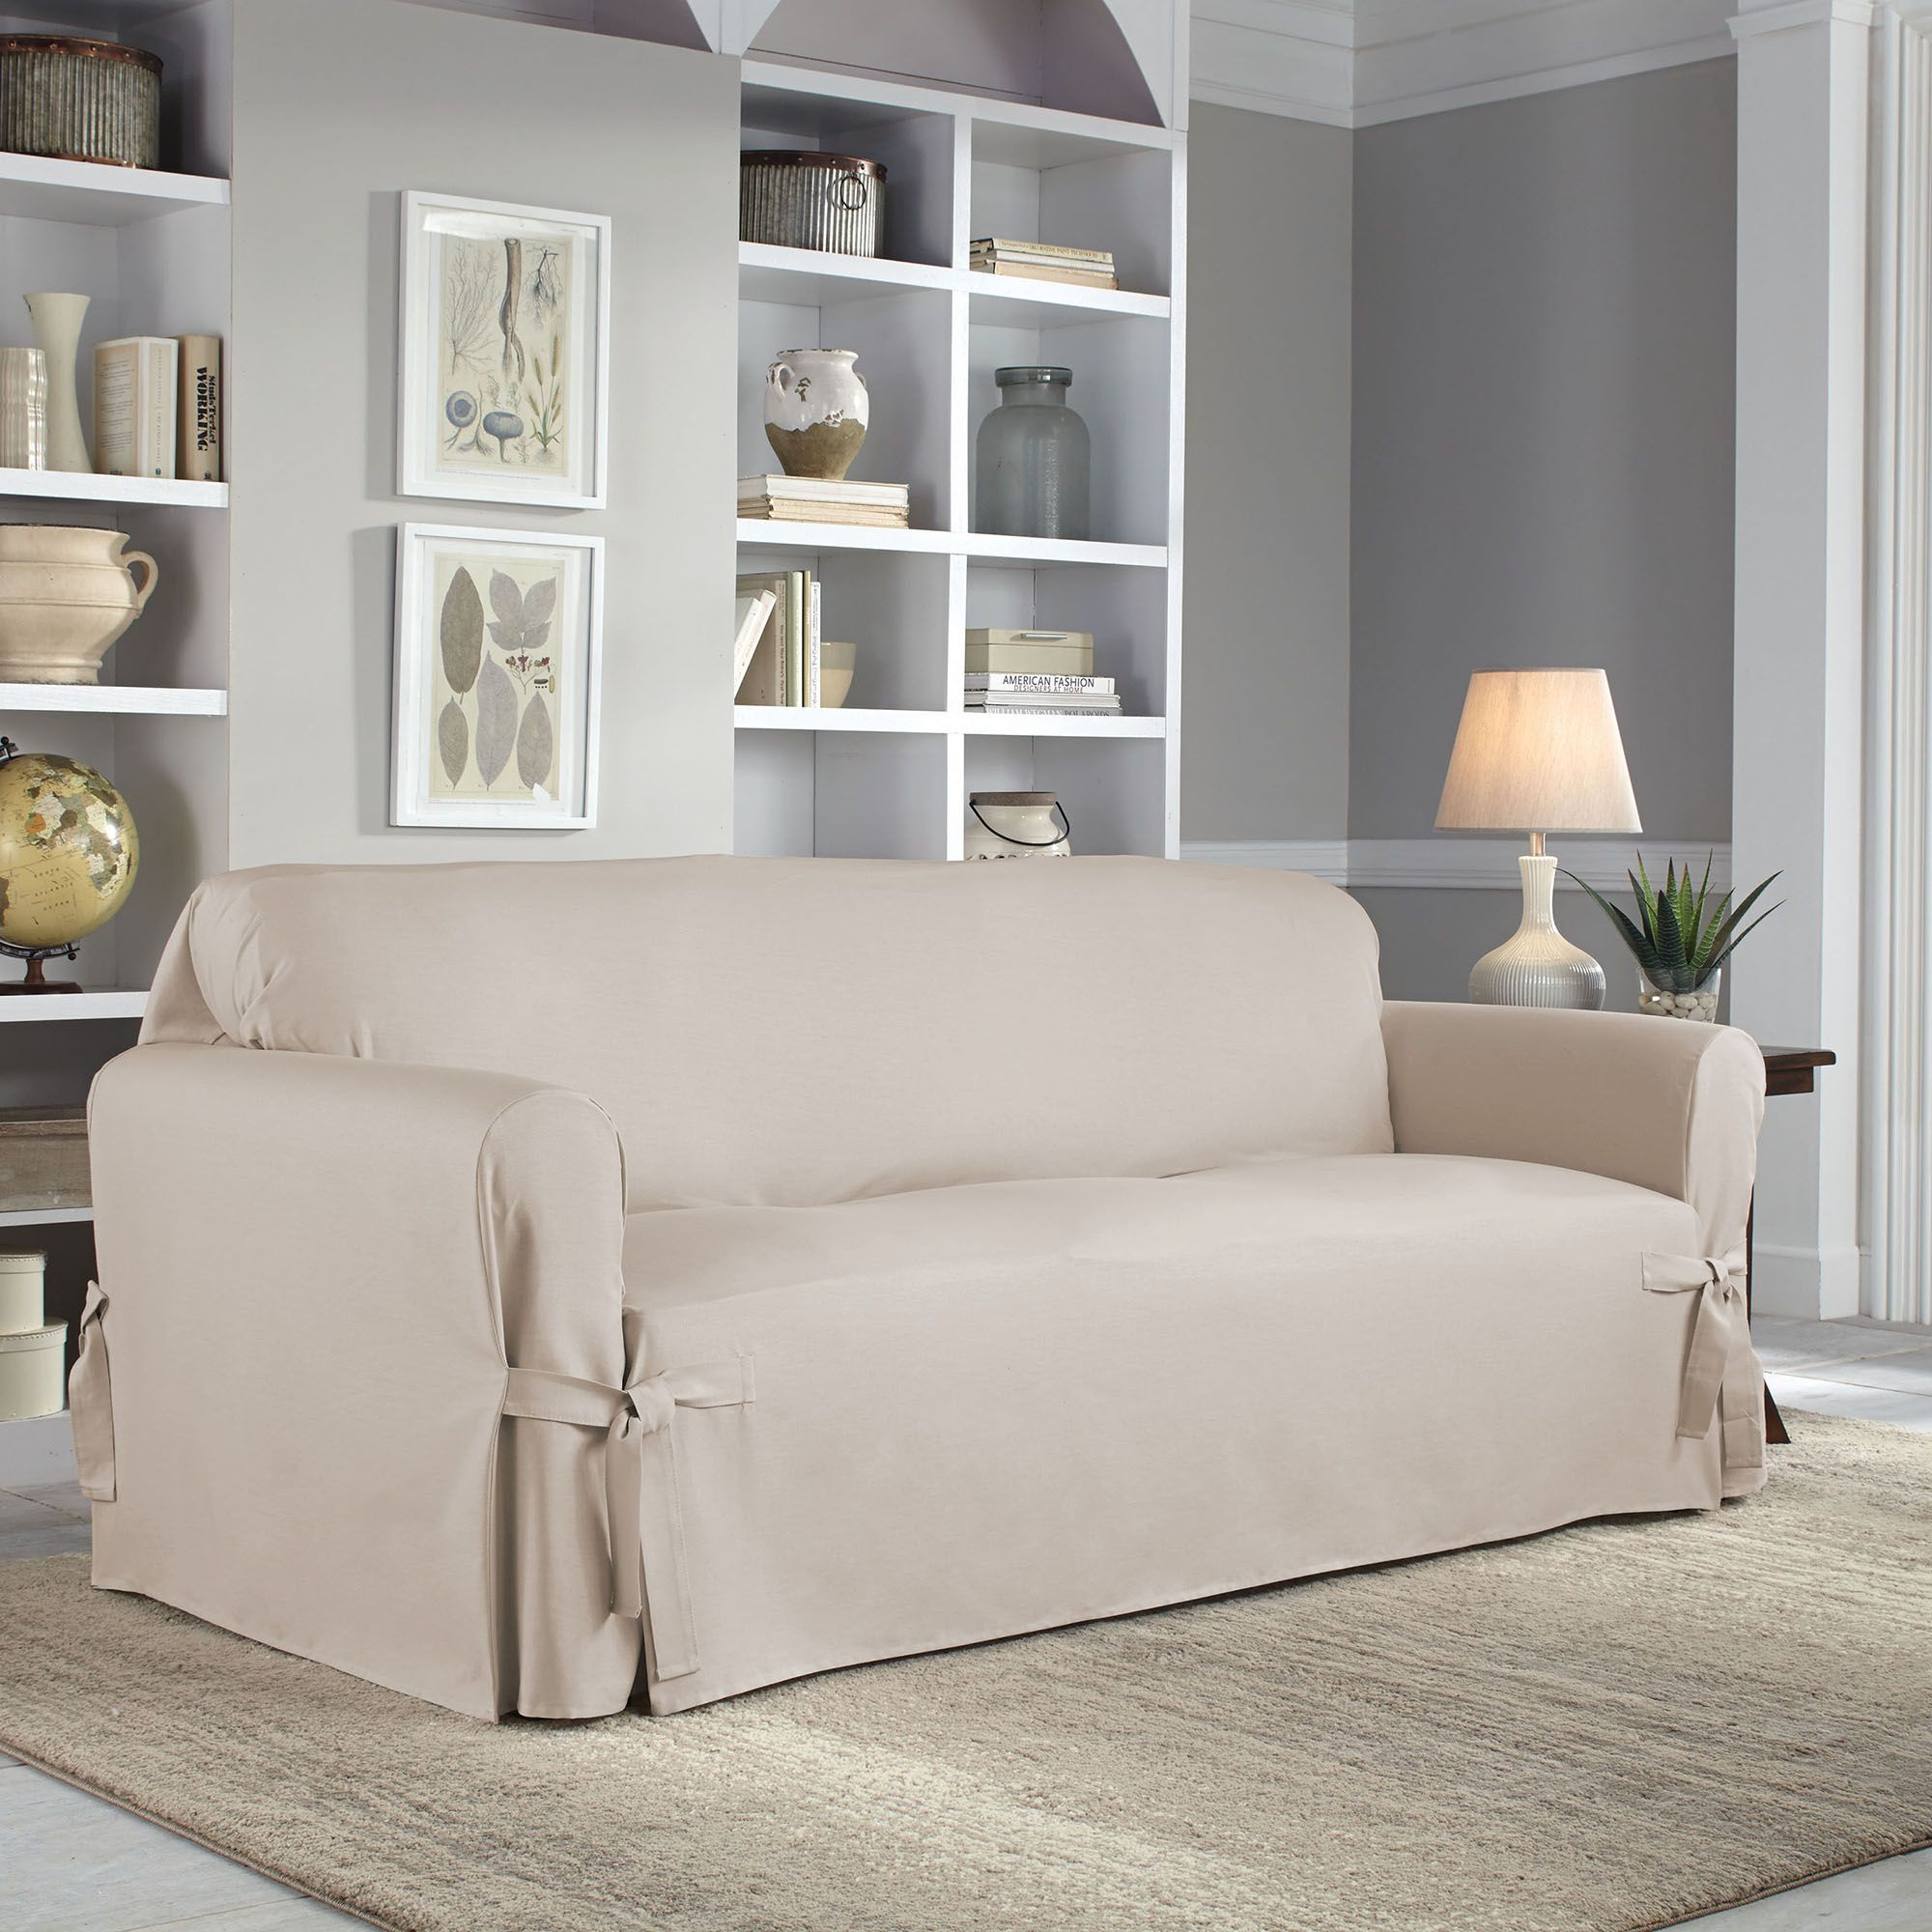 Sofa Slipcovers, Couch Covers and Furniture Throws - Bed Bath